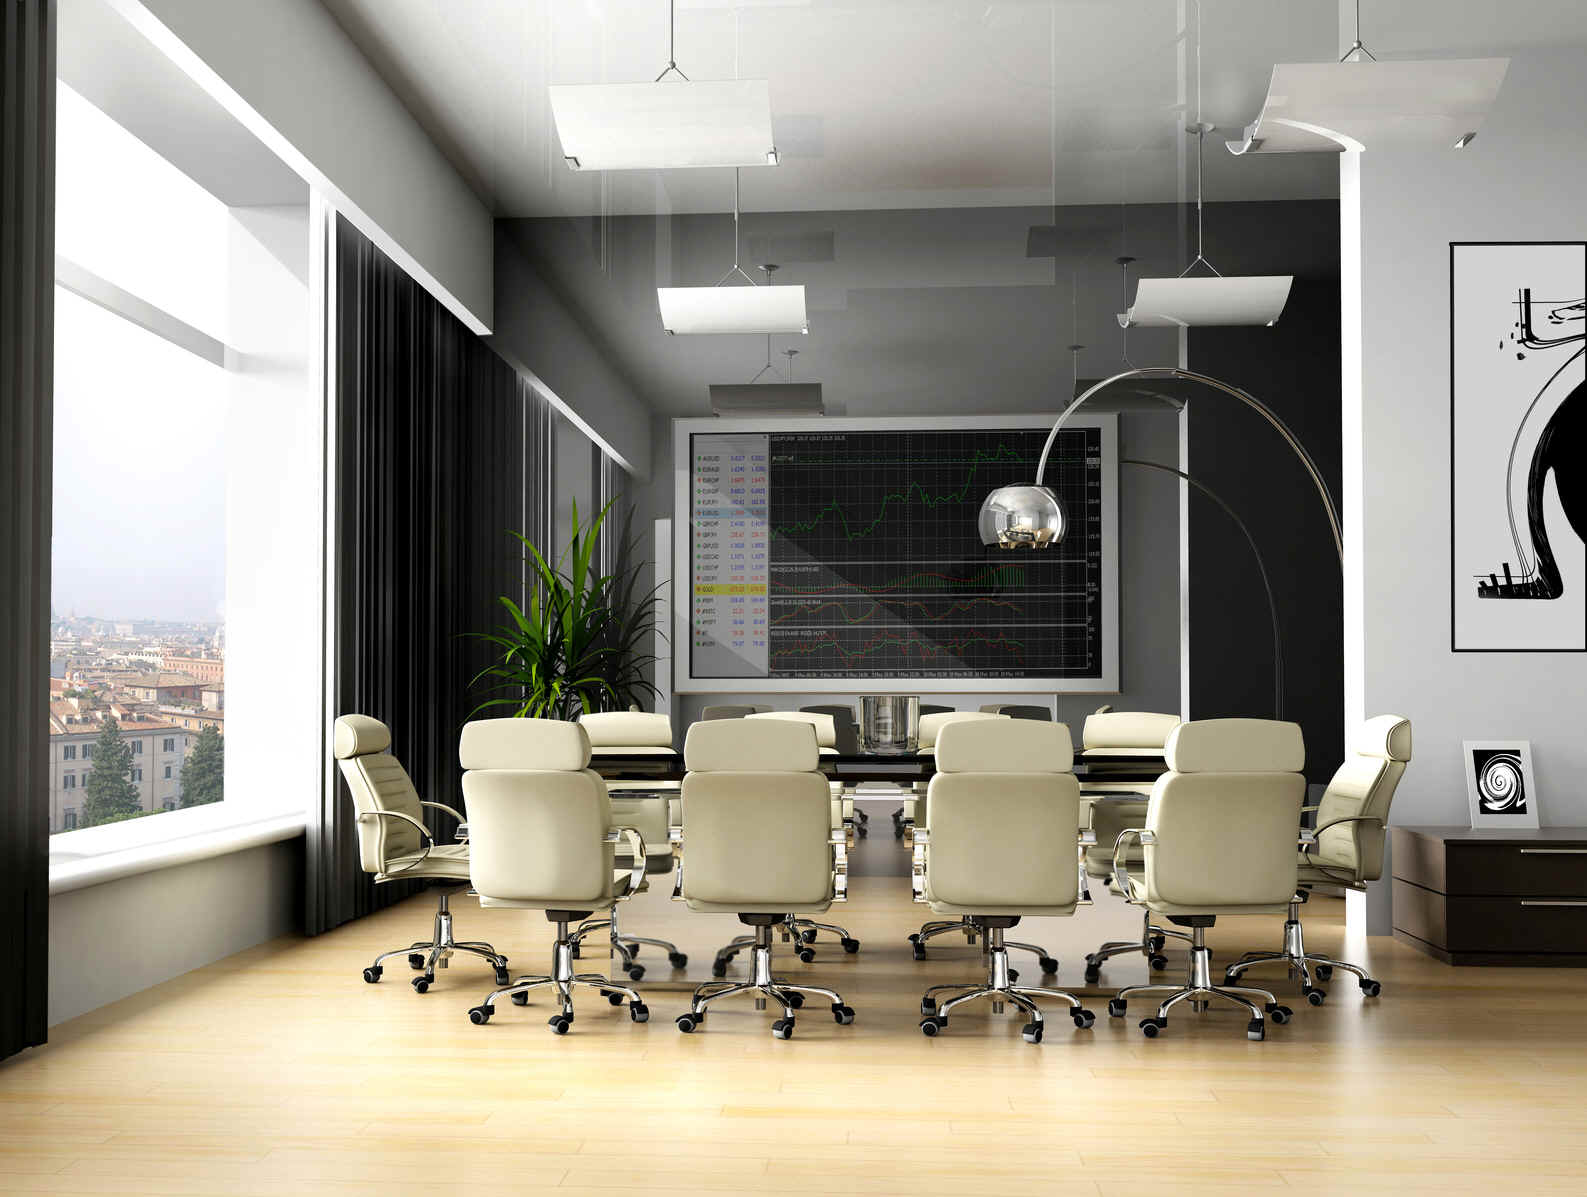 Modern Office Interior Modern Office Meeting Room New Office Conference Room